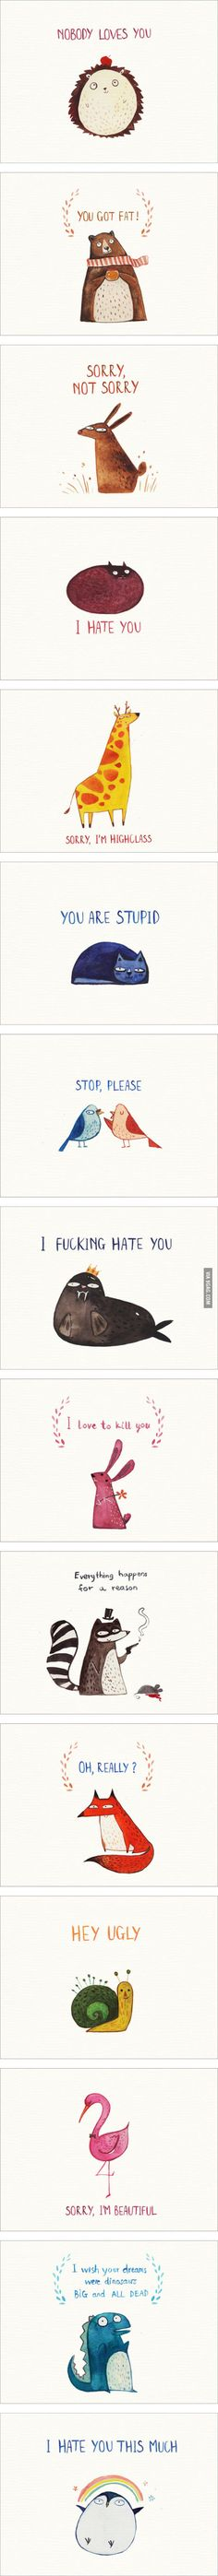 15 Cute Postcards For Your Enemies